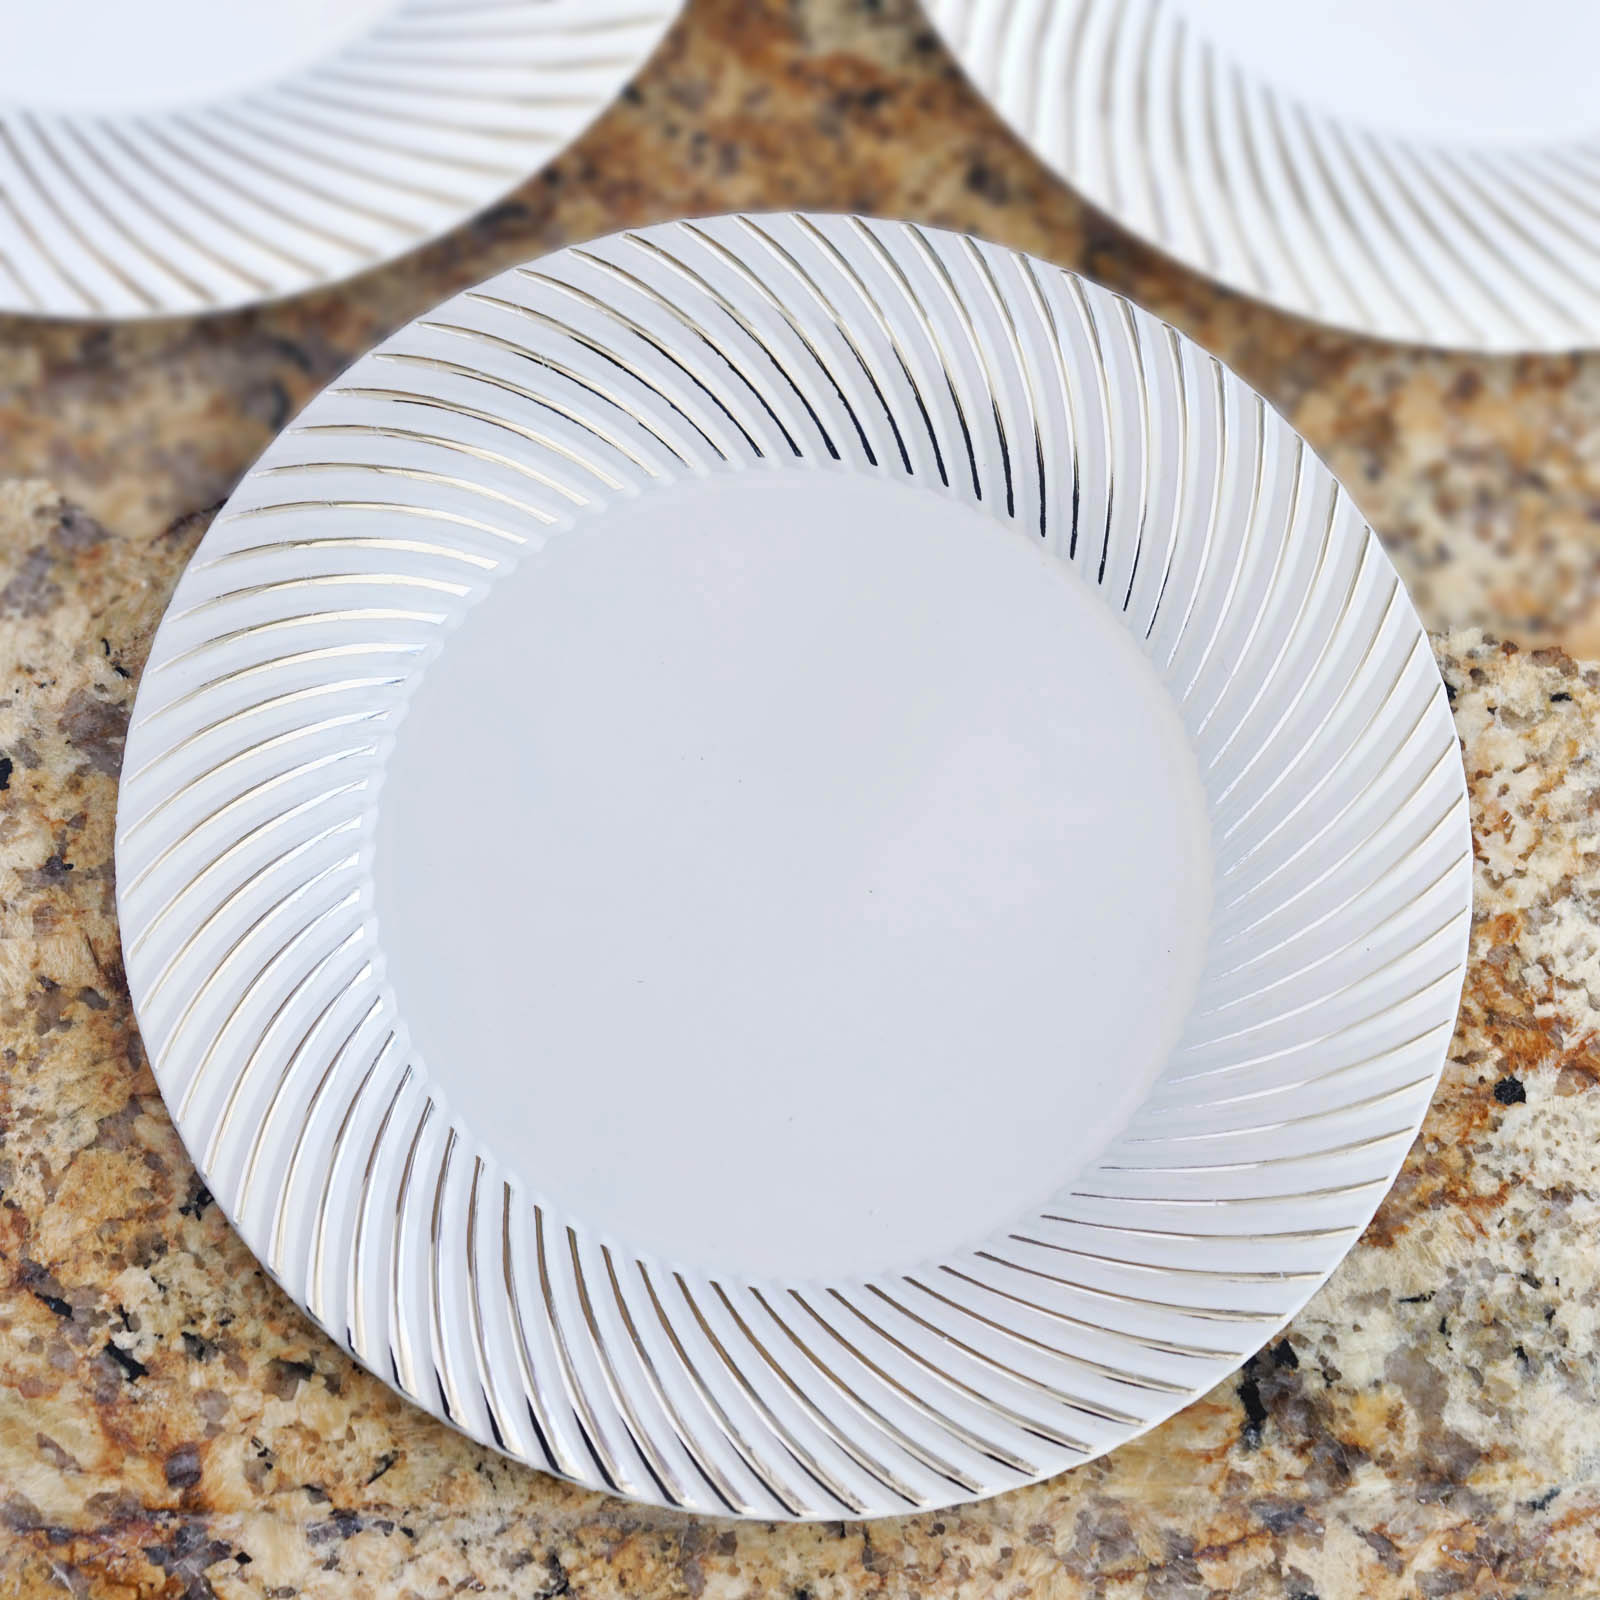 Efavormart 50 Pcs - Round Disposable Plastic Plate Dinner Plates for Wedding Party Banquet Events - & Disposable Plastic Plates